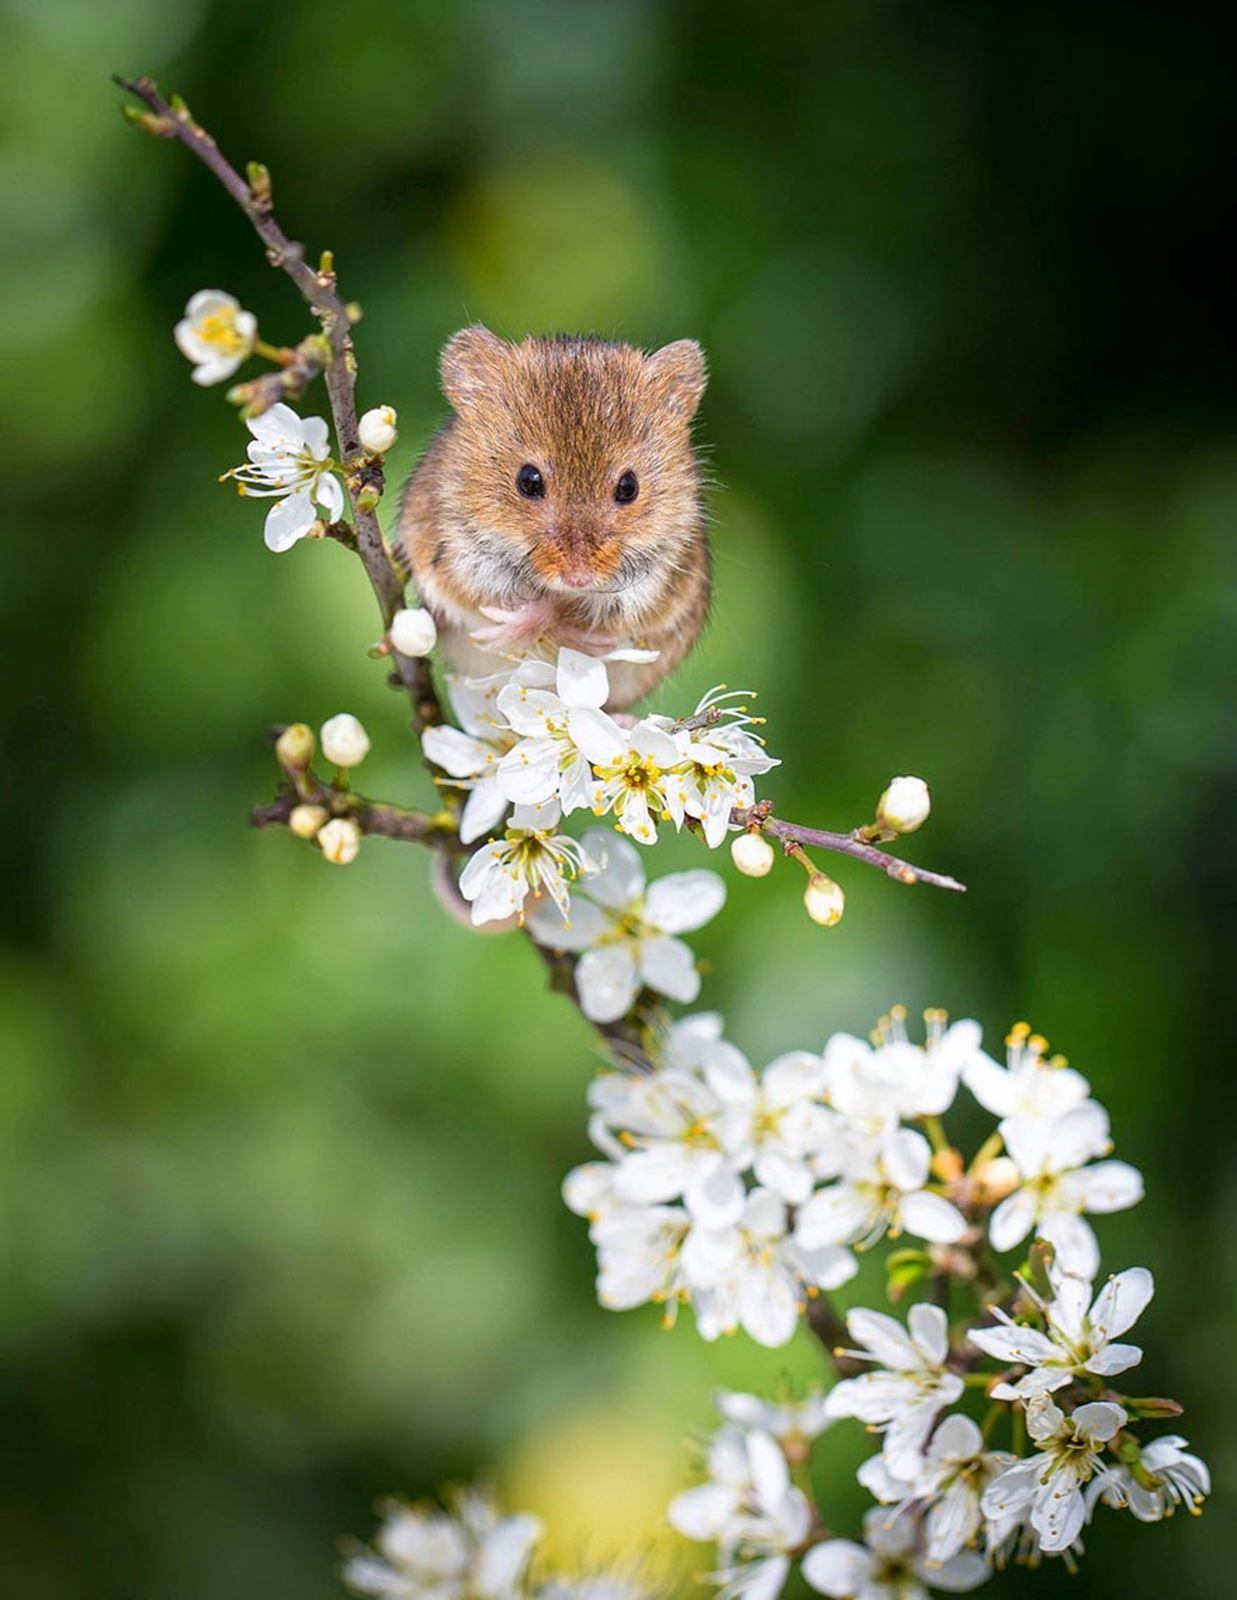 Cute Mice Cute animals, Animals beautiful, Cute animal